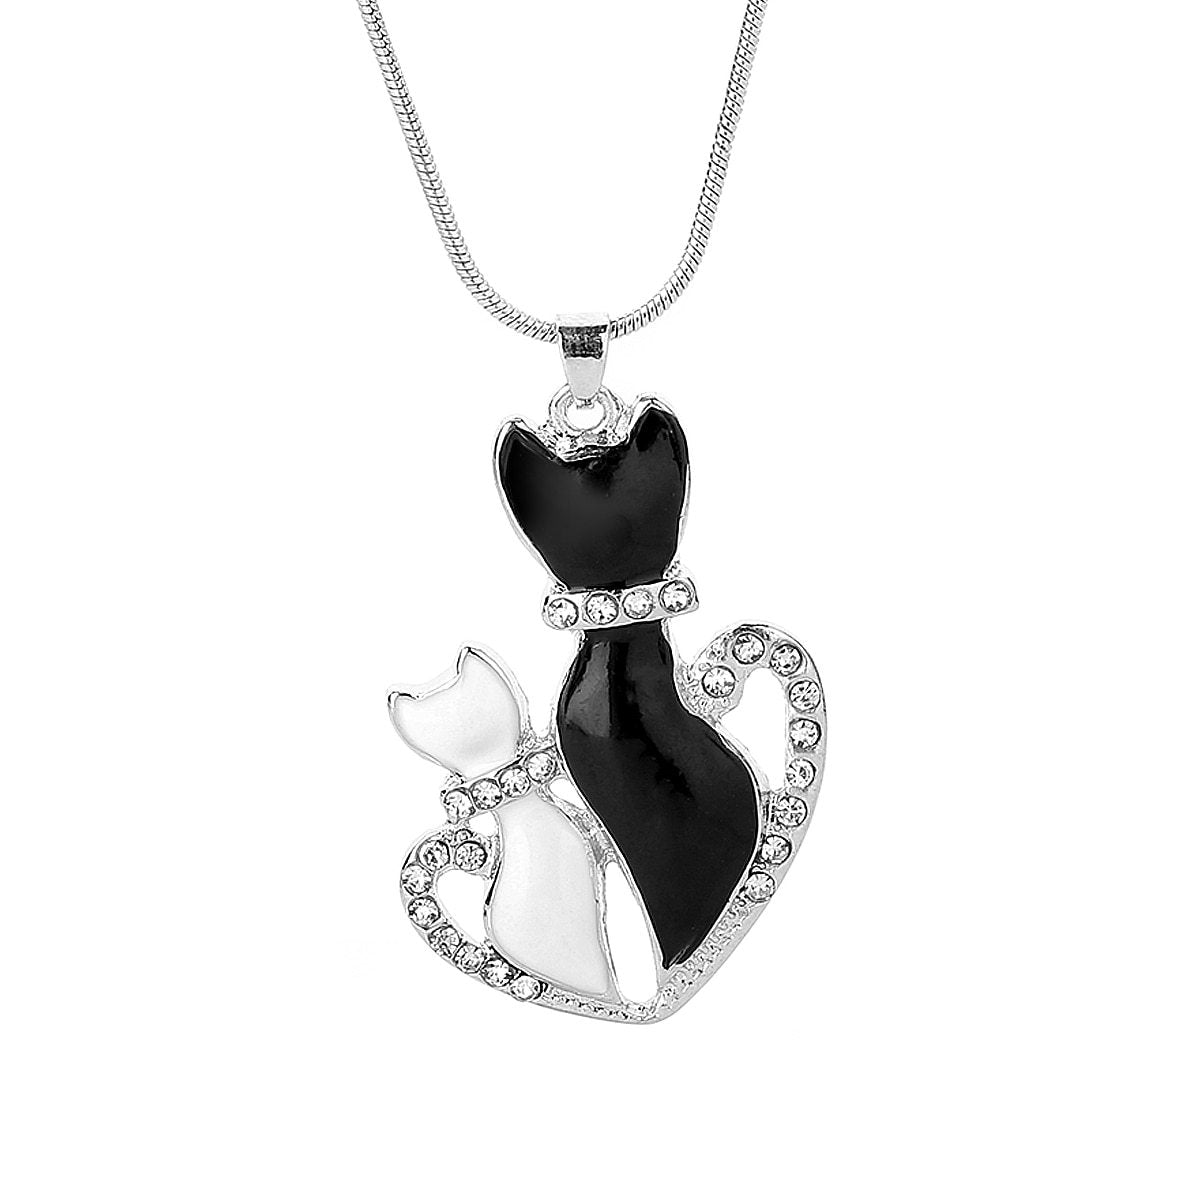 Lovely Pet Chain Necklaces Charms Crystal Black And White Cat Loveintothea-intothea